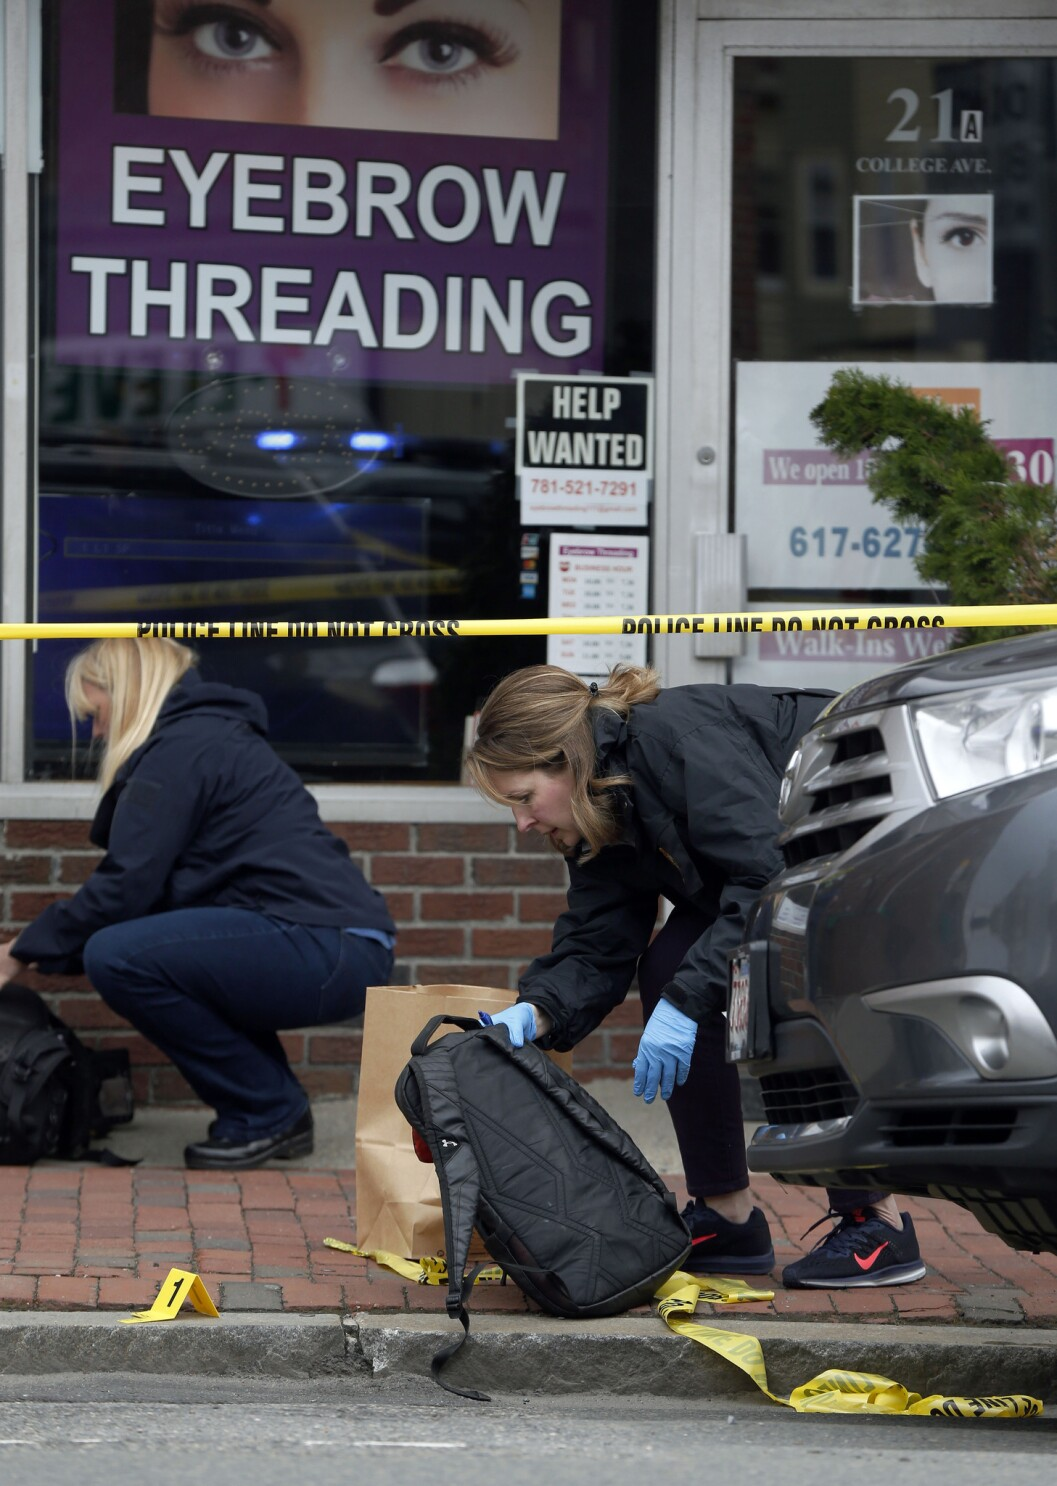 Suspect arrested after bank robbed, shots fired near Boston